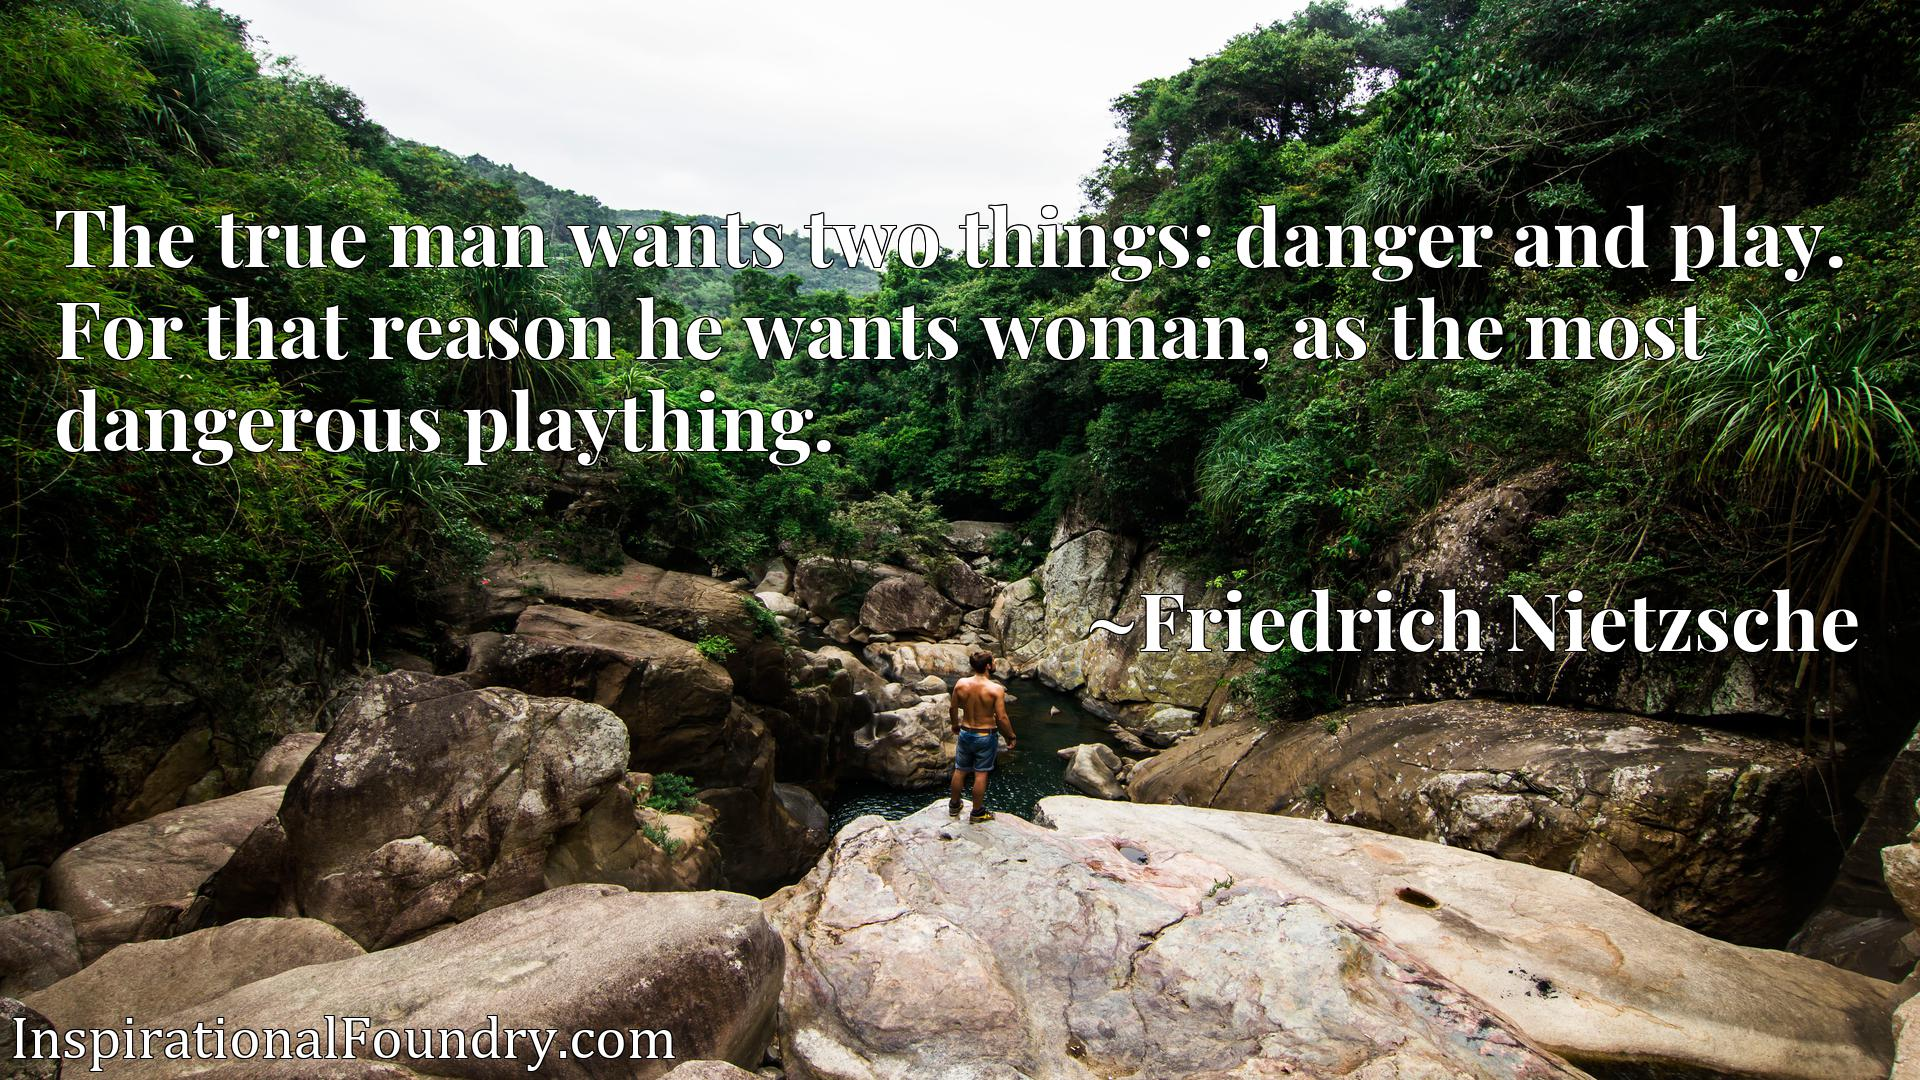 The true man wants two things: danger and play. For that reason he wants woman, as the most dangerous plaything.